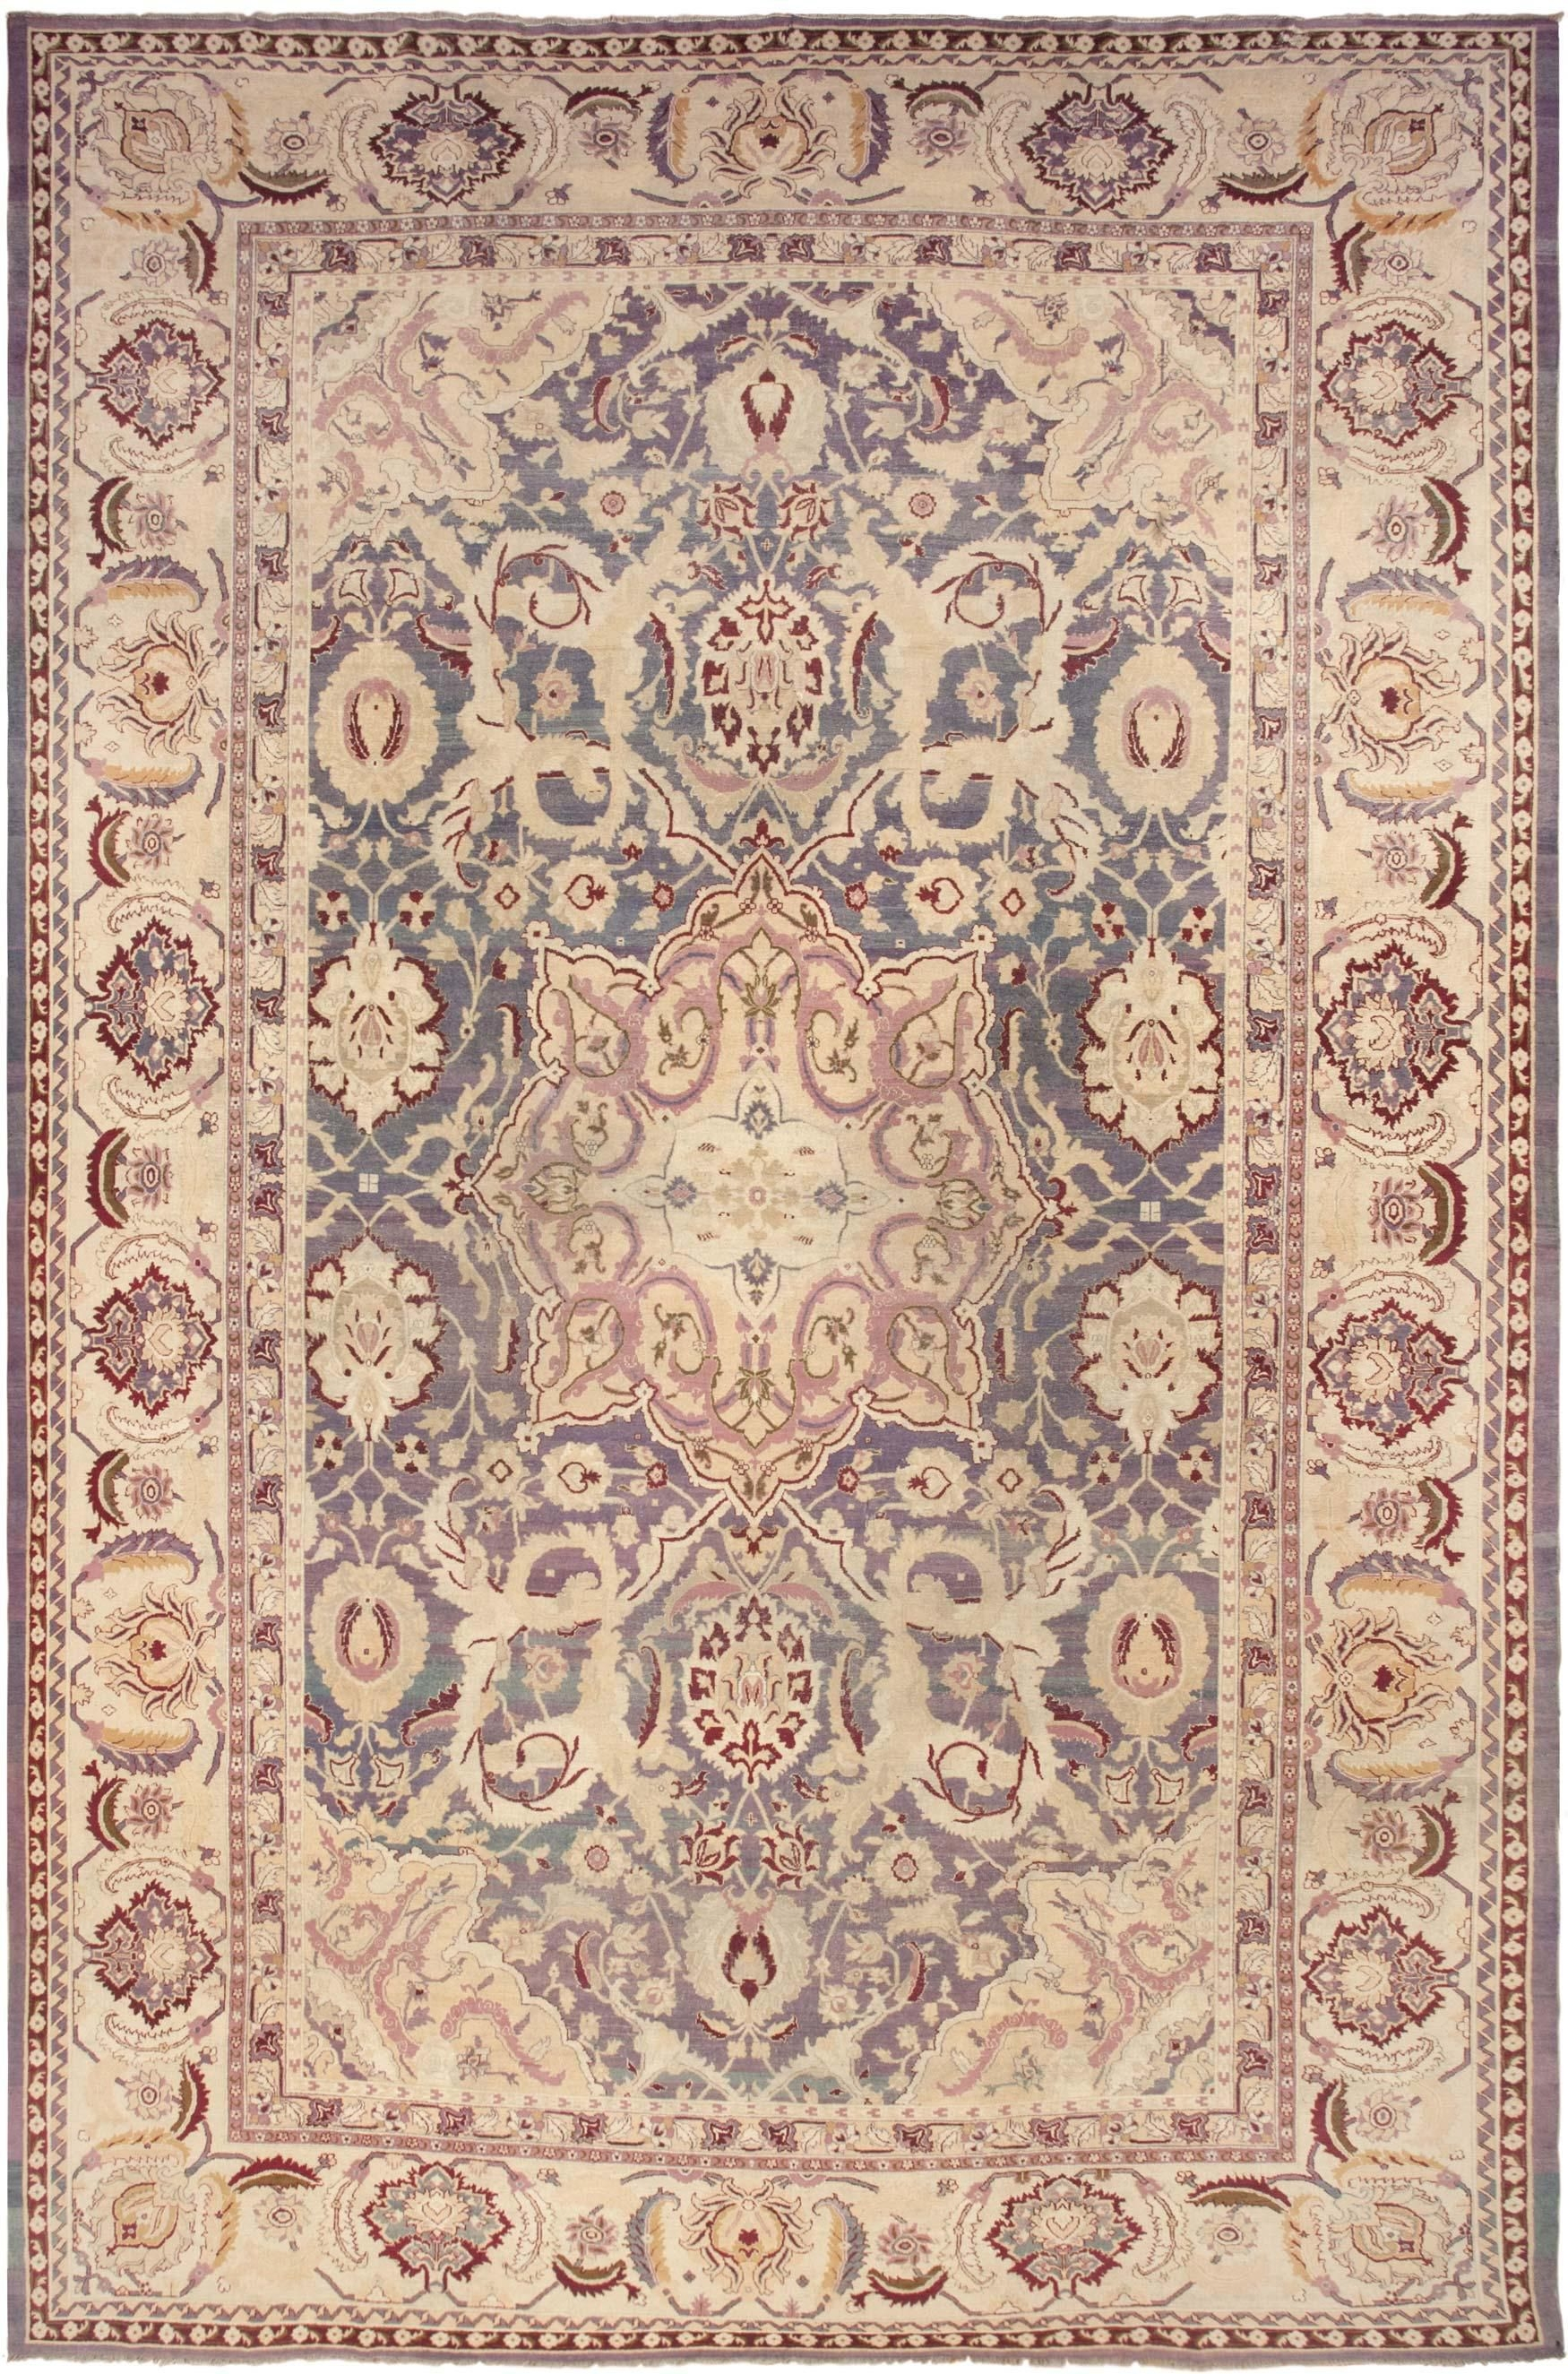 Large Antique Indian Agra Rug 45976 Nazmiyal Pertaining To Agra Rugs (Image 11 of 15)